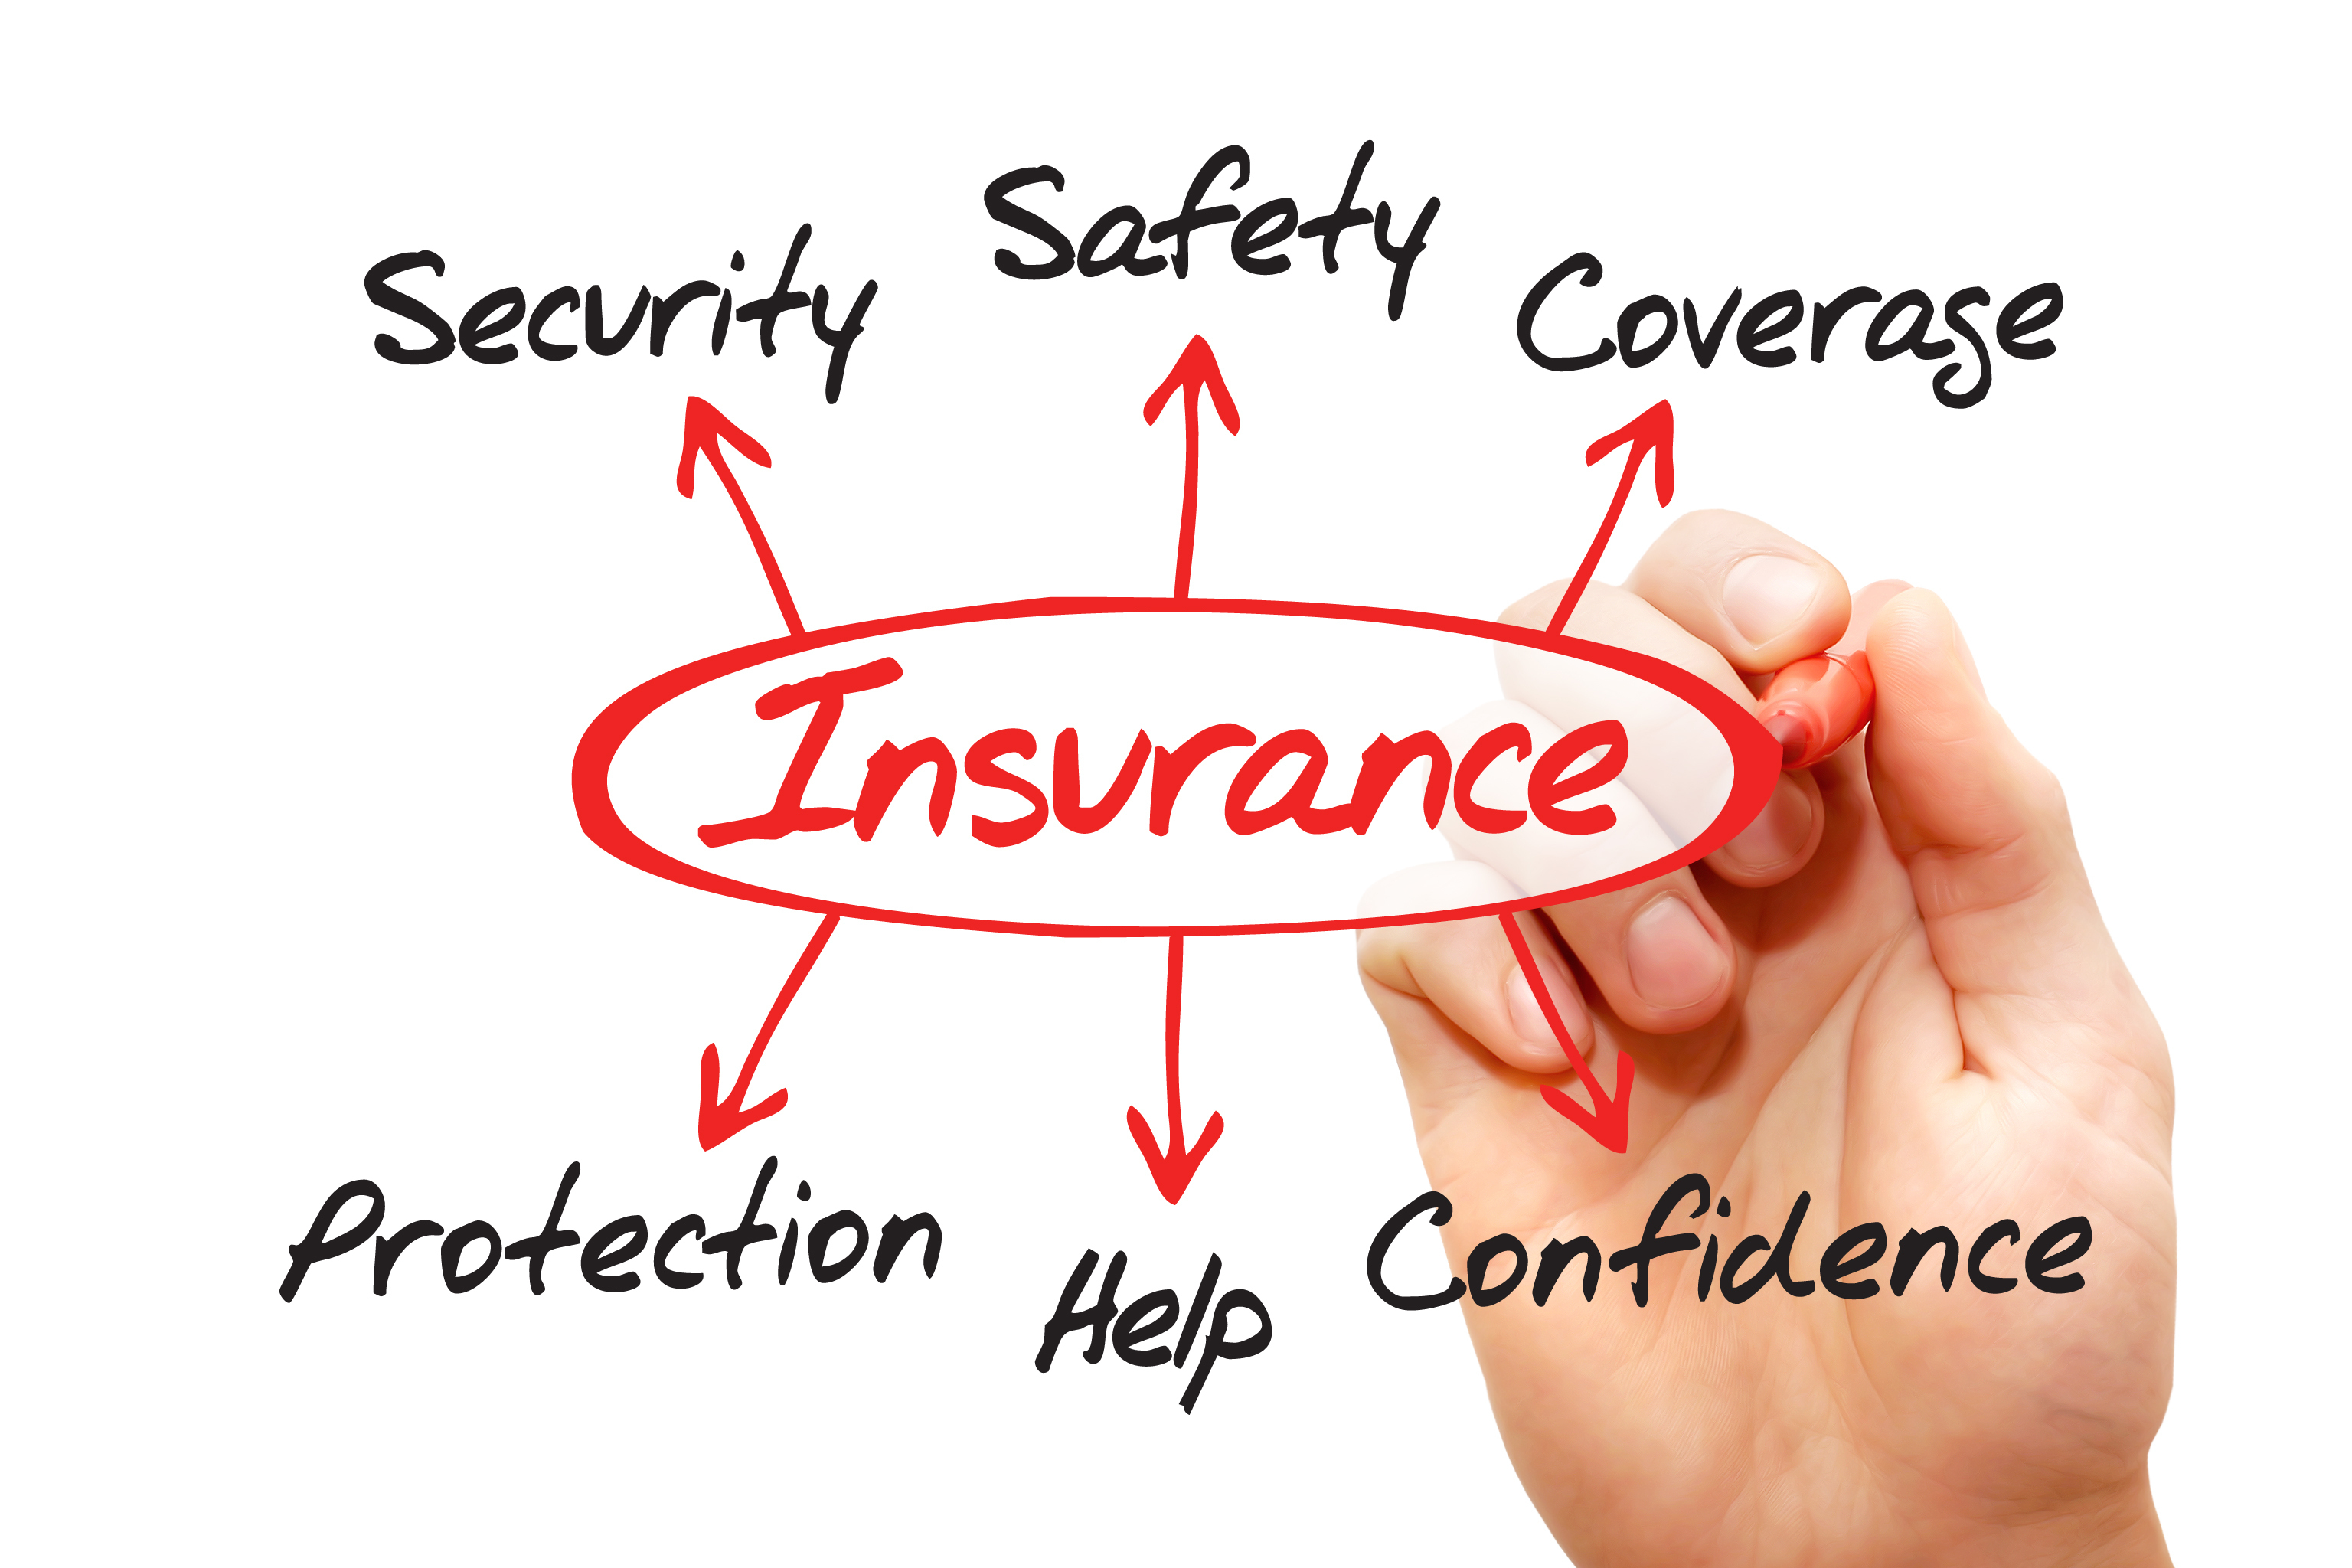 Life insurance and medicare policies in St. Charles, MO